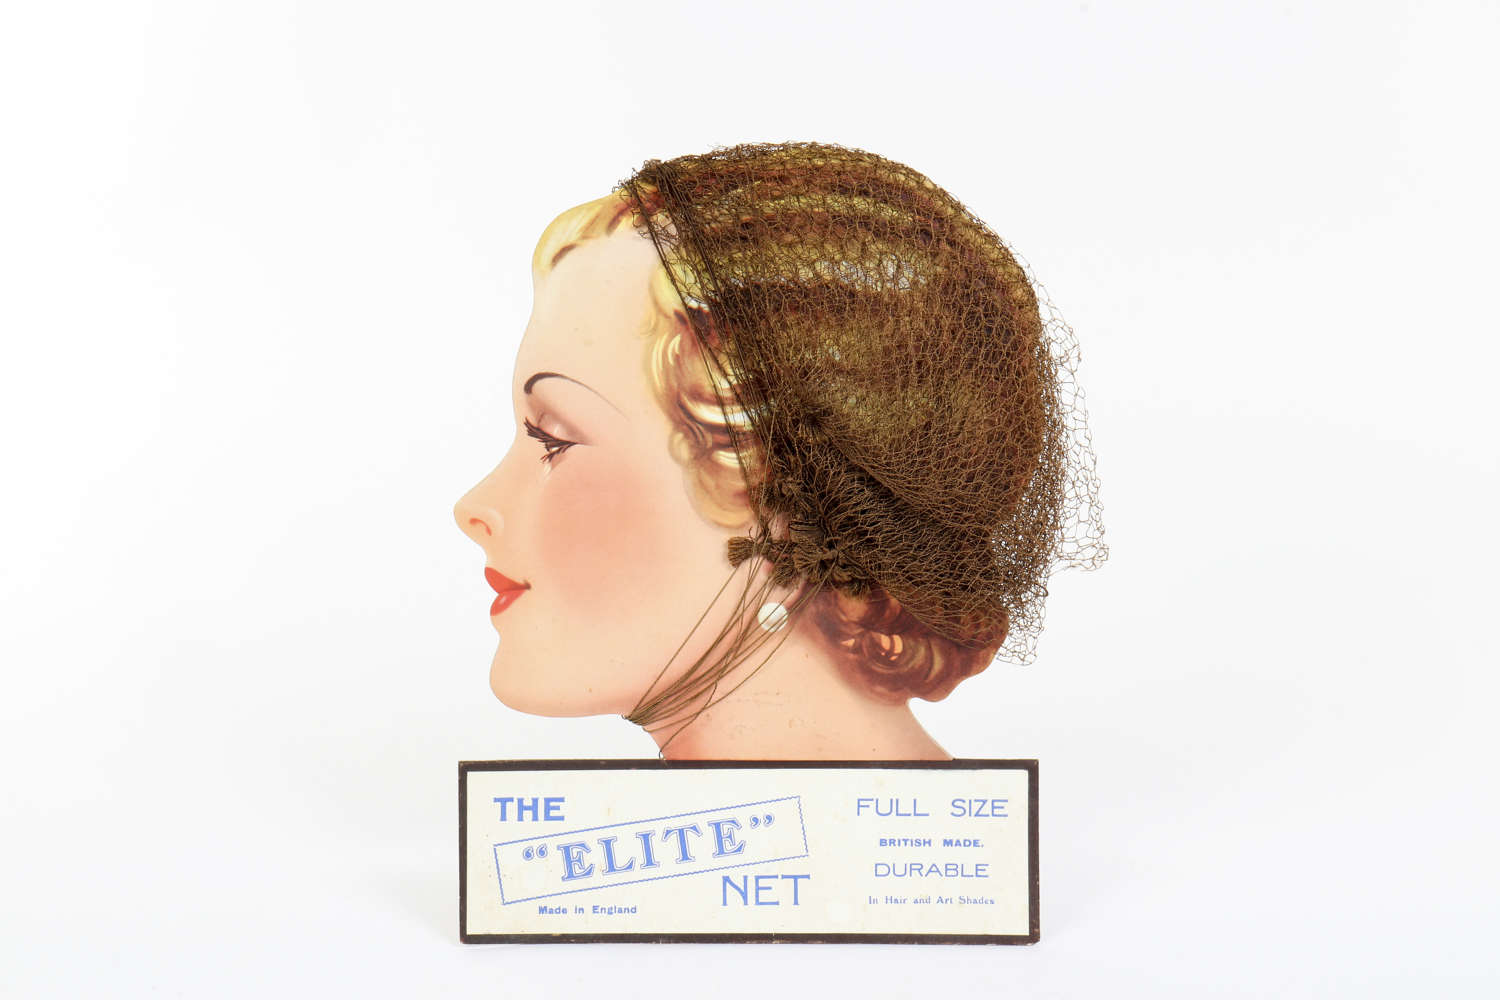 Original advertising showcard for 'Elite' hair nets